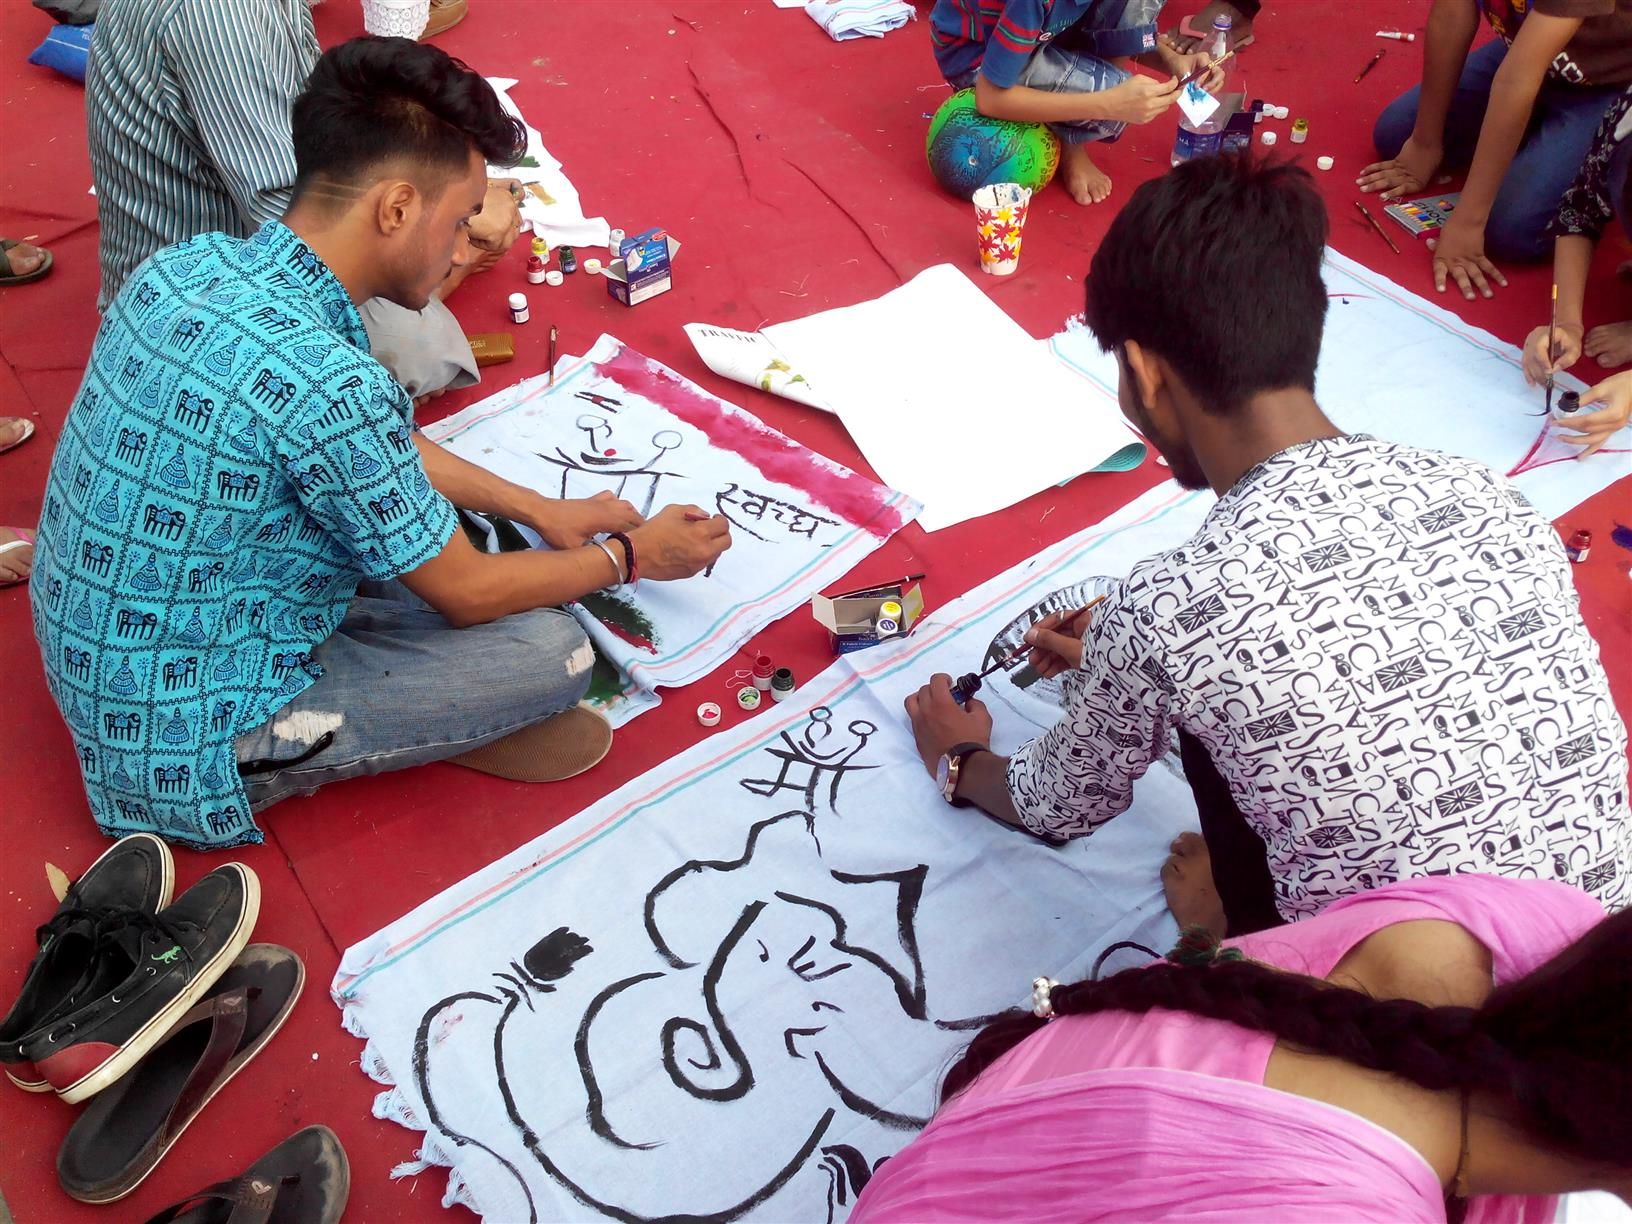 Children drawing on Environmental themes